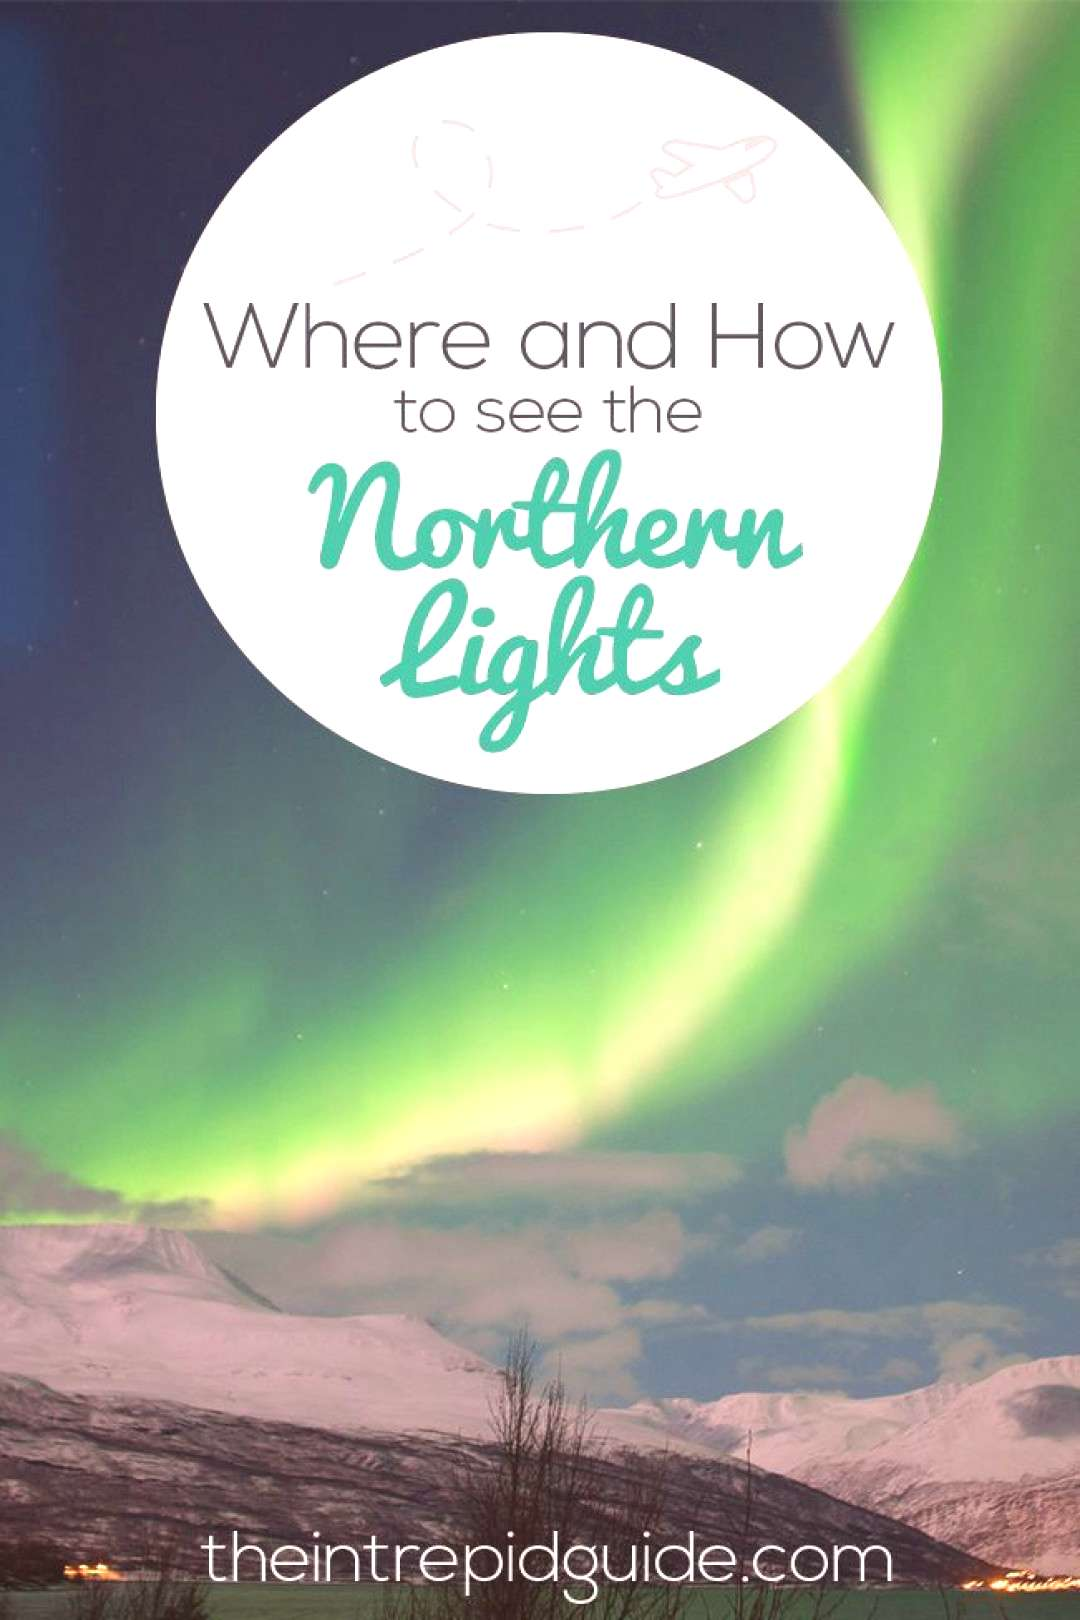 Best Tromsø Northern Lights Tour You Wont Want To Miss - The Intrepid Guide Nothing quite leaves